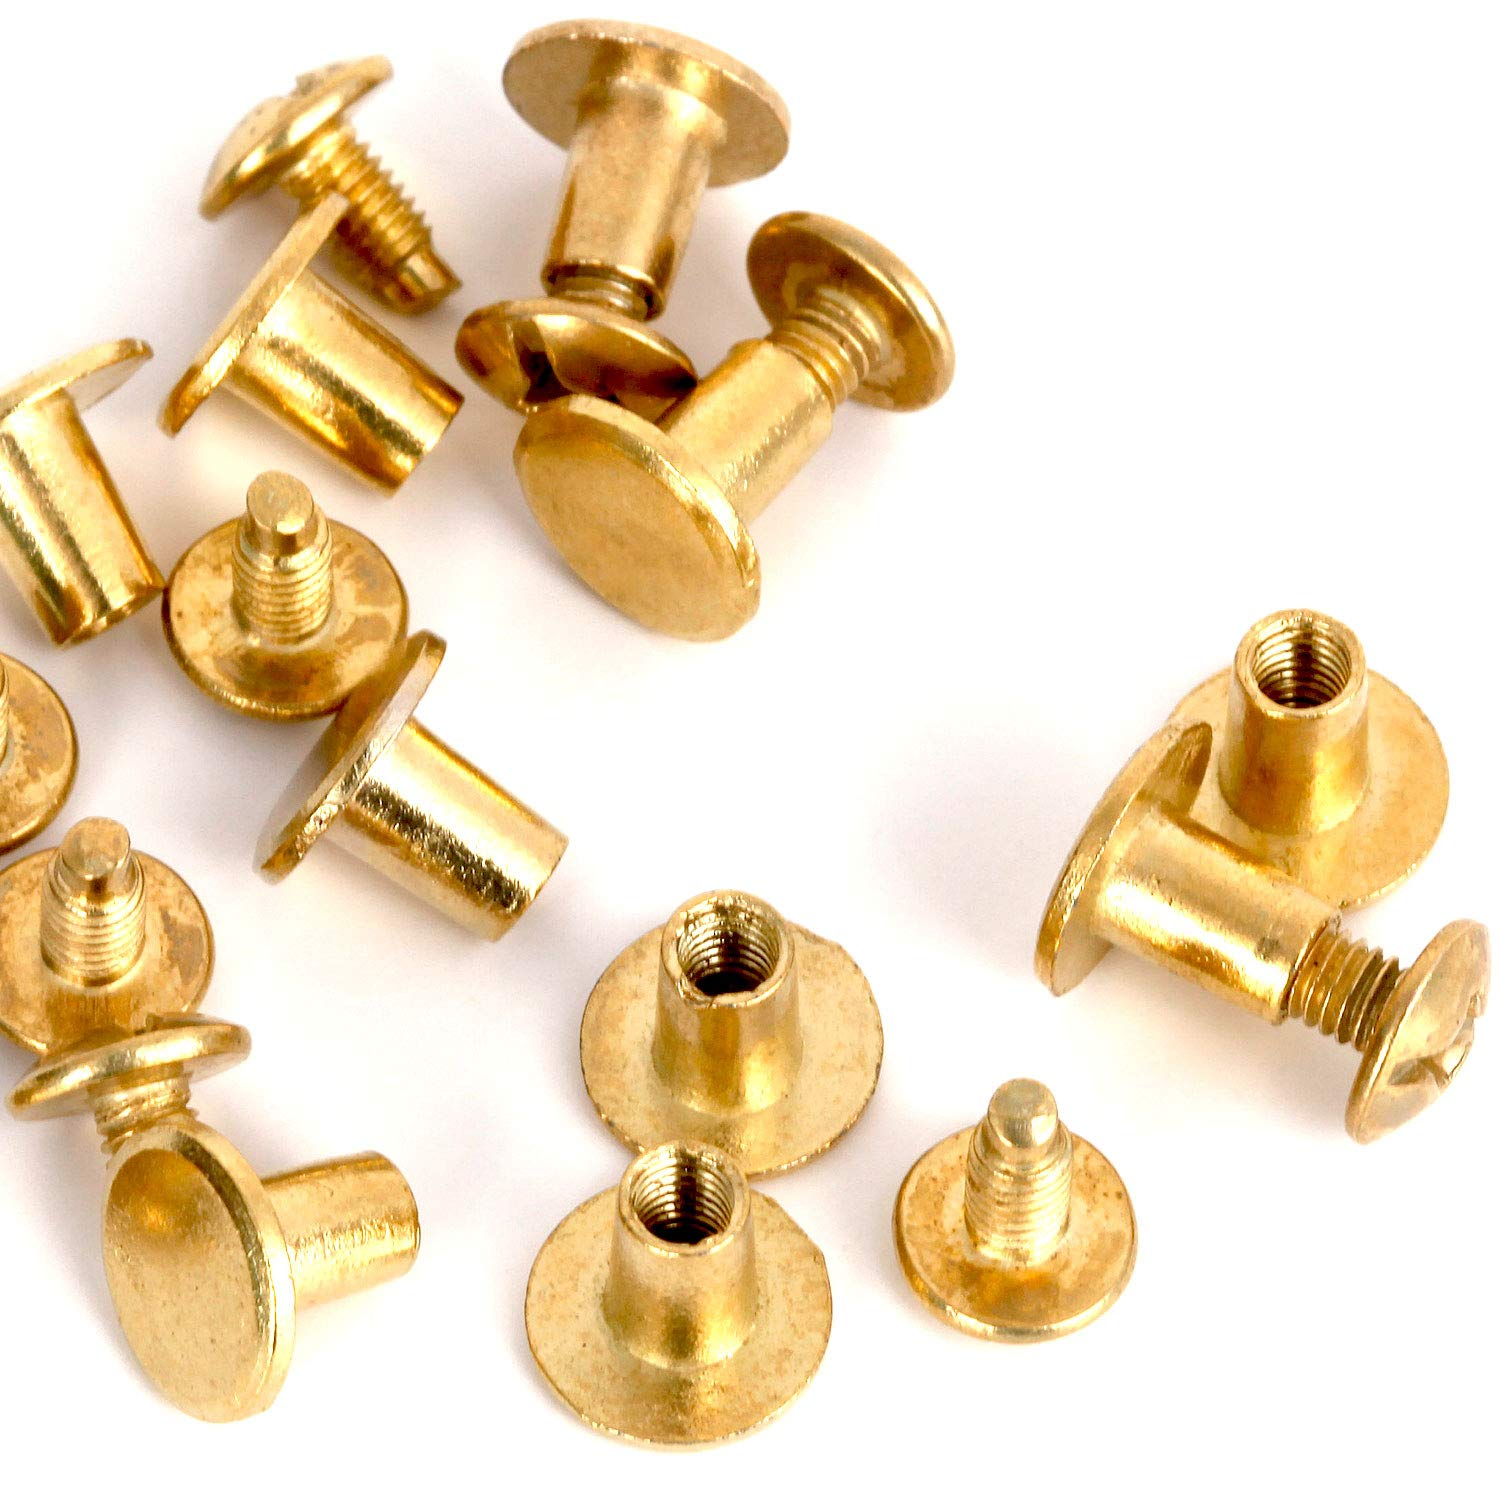 Round Flat Head Chicago Screws Buttons for Leather Crafting, 1/4 Inches (6mm) Repair Screw Post Fastener, Metal Nail Rivet Studs, Gold, 30 Sets, Diameter 5/16 Inches (8mm) RUBYCA